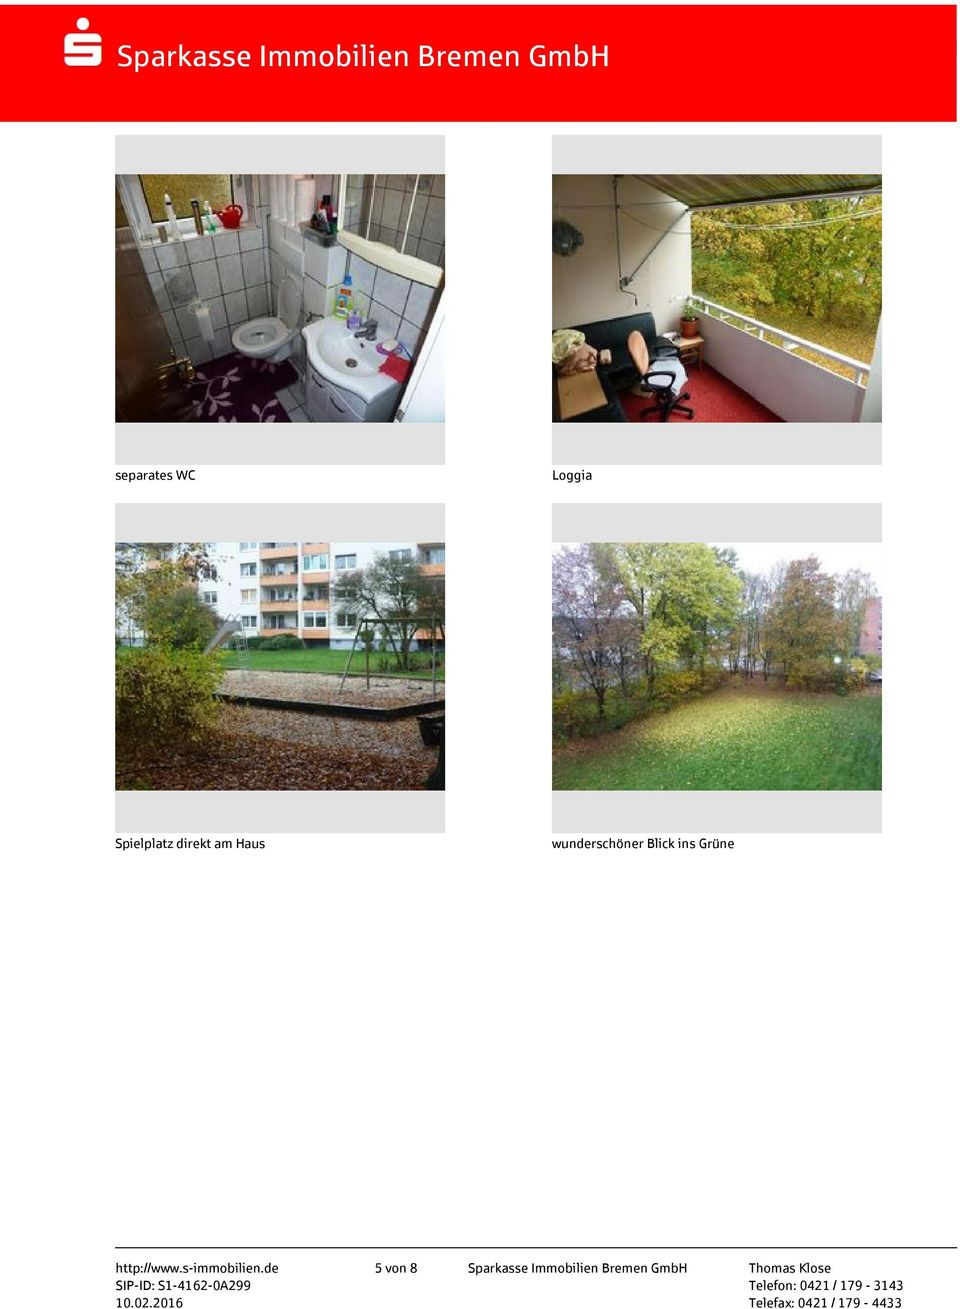 http://www.s-immobilien.